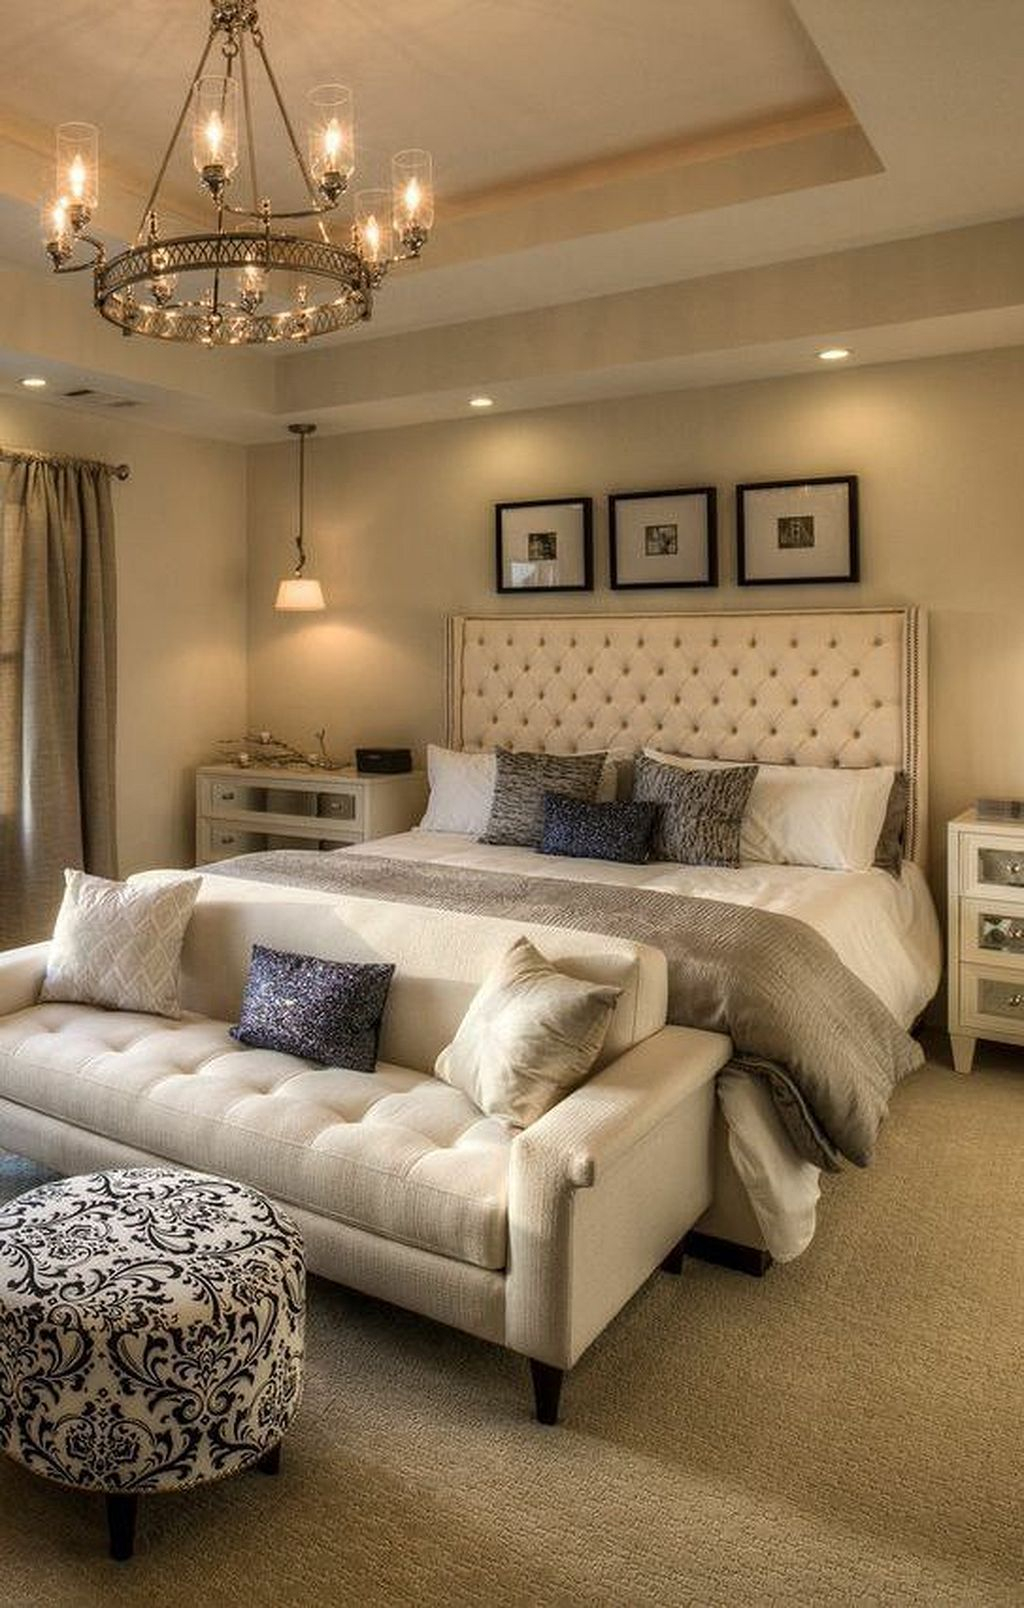 Amazing Bedroom Decorating Ideas For Couples 12 For My Home